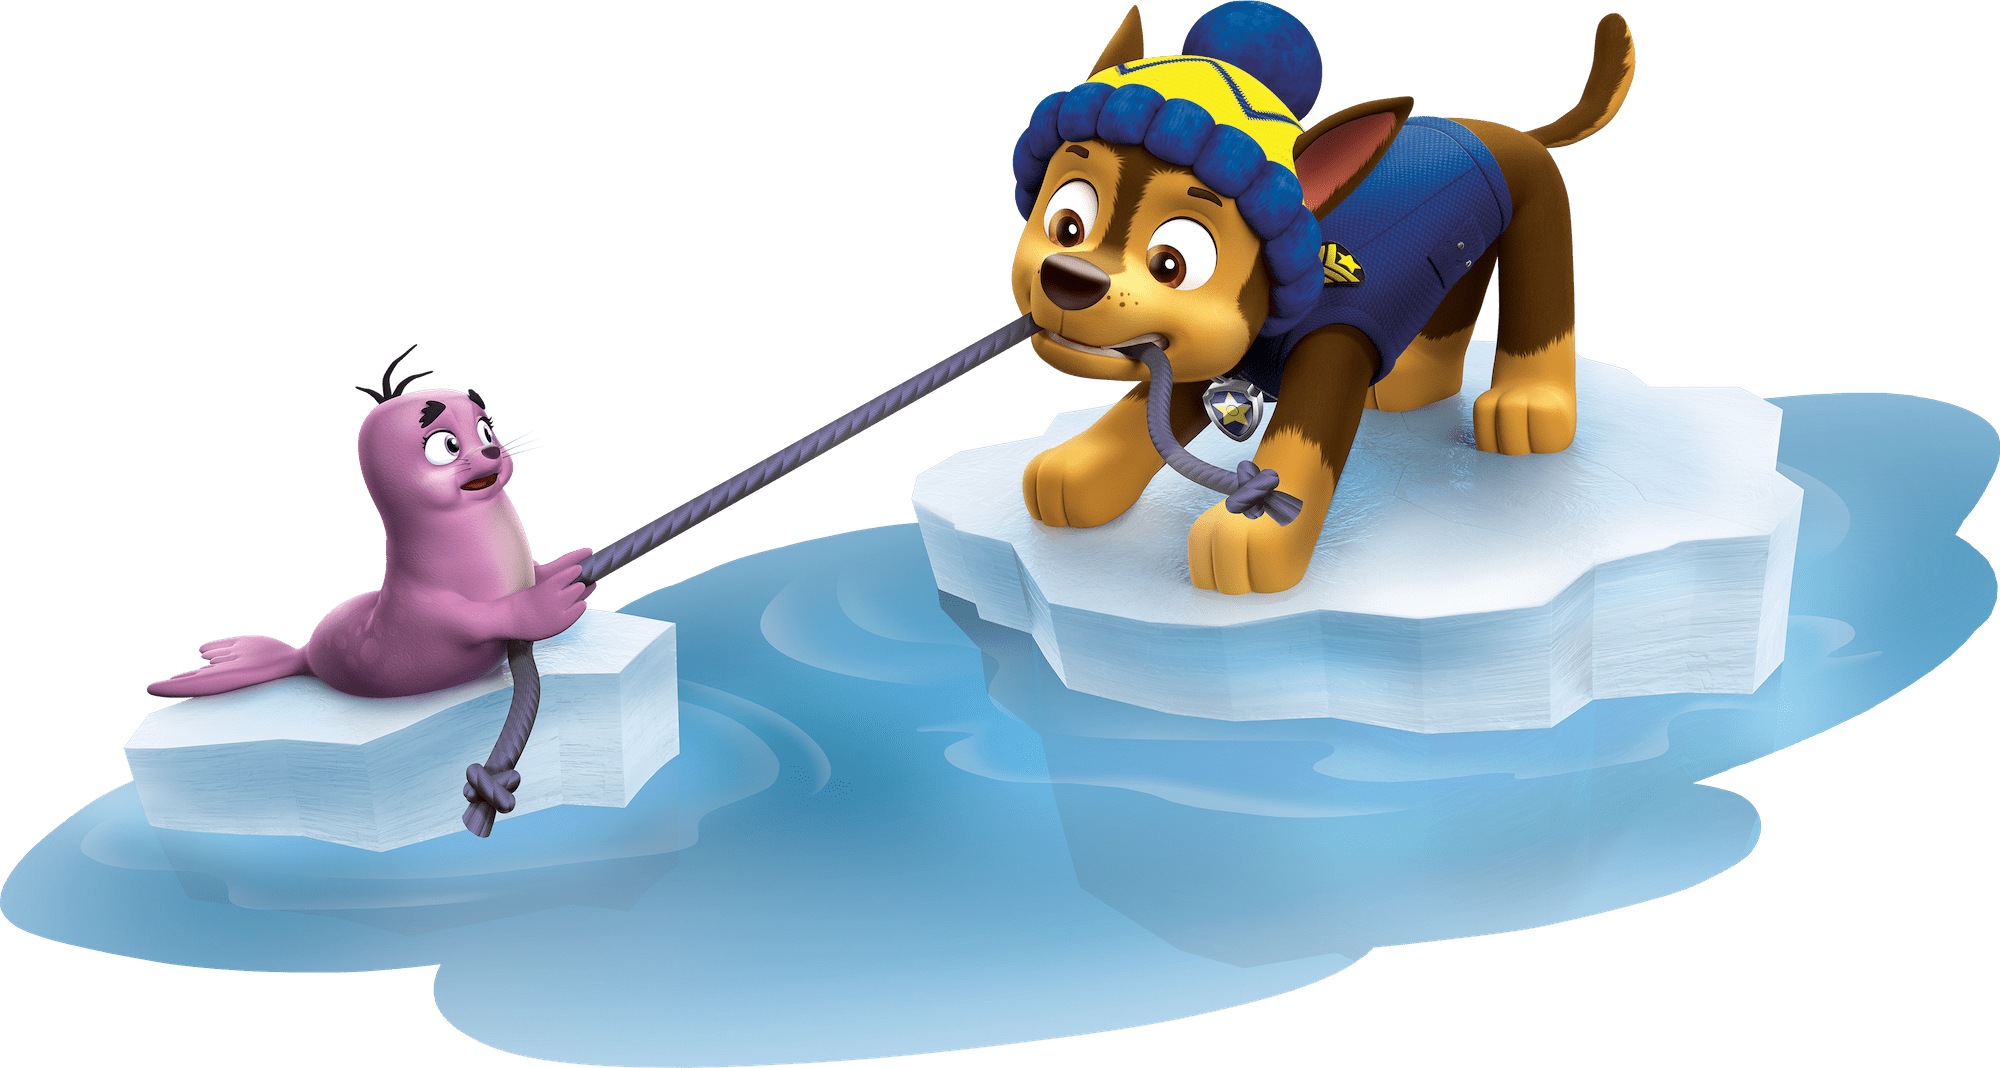 chase having fun paw patrol clipart png